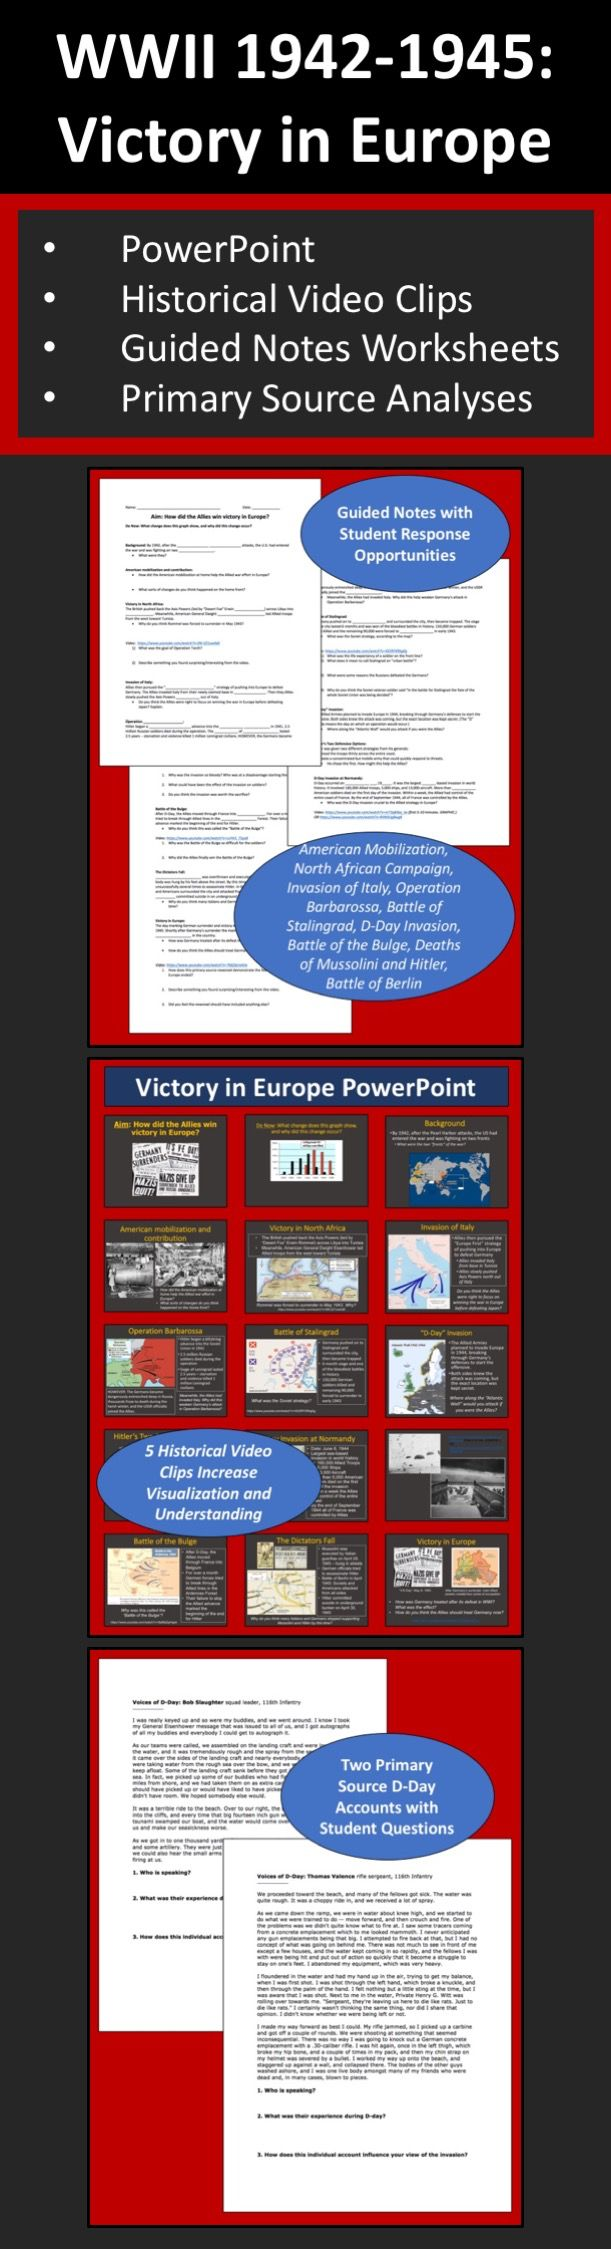 Students learn about the key events, battles, and strategies from 1942-1945 that helped the Allied Powers win victory in Europe during World War Two. Includes a PowerPoint, five historical video clips, guided notes worksheets, and two primary source analysis activities. Content covered includes: American mobilization, the North African Campaign, Allied Invasion of Italy, Operation Barbarossa and Siege of Leningrad, Battle of Stalingrad, D-Day Invasion, Battle of the Bulge, Deaths of…